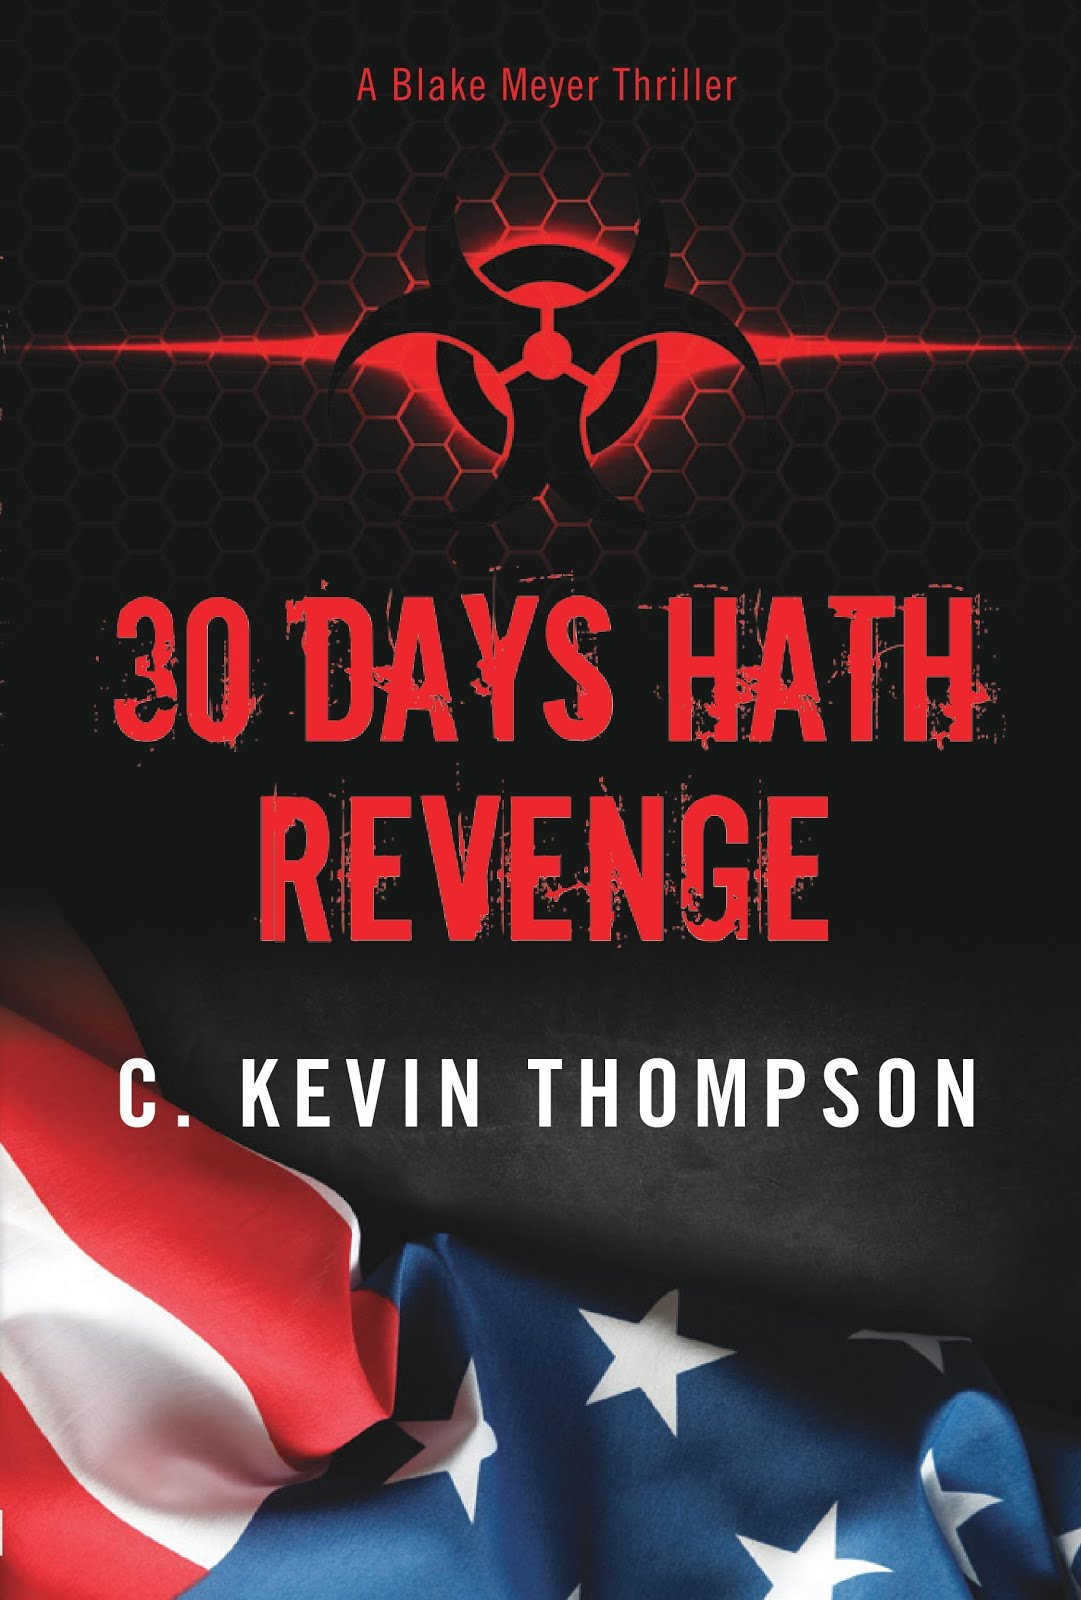 30 Days Hath Revenge (A Blake Meyer Thriller - Book 1)